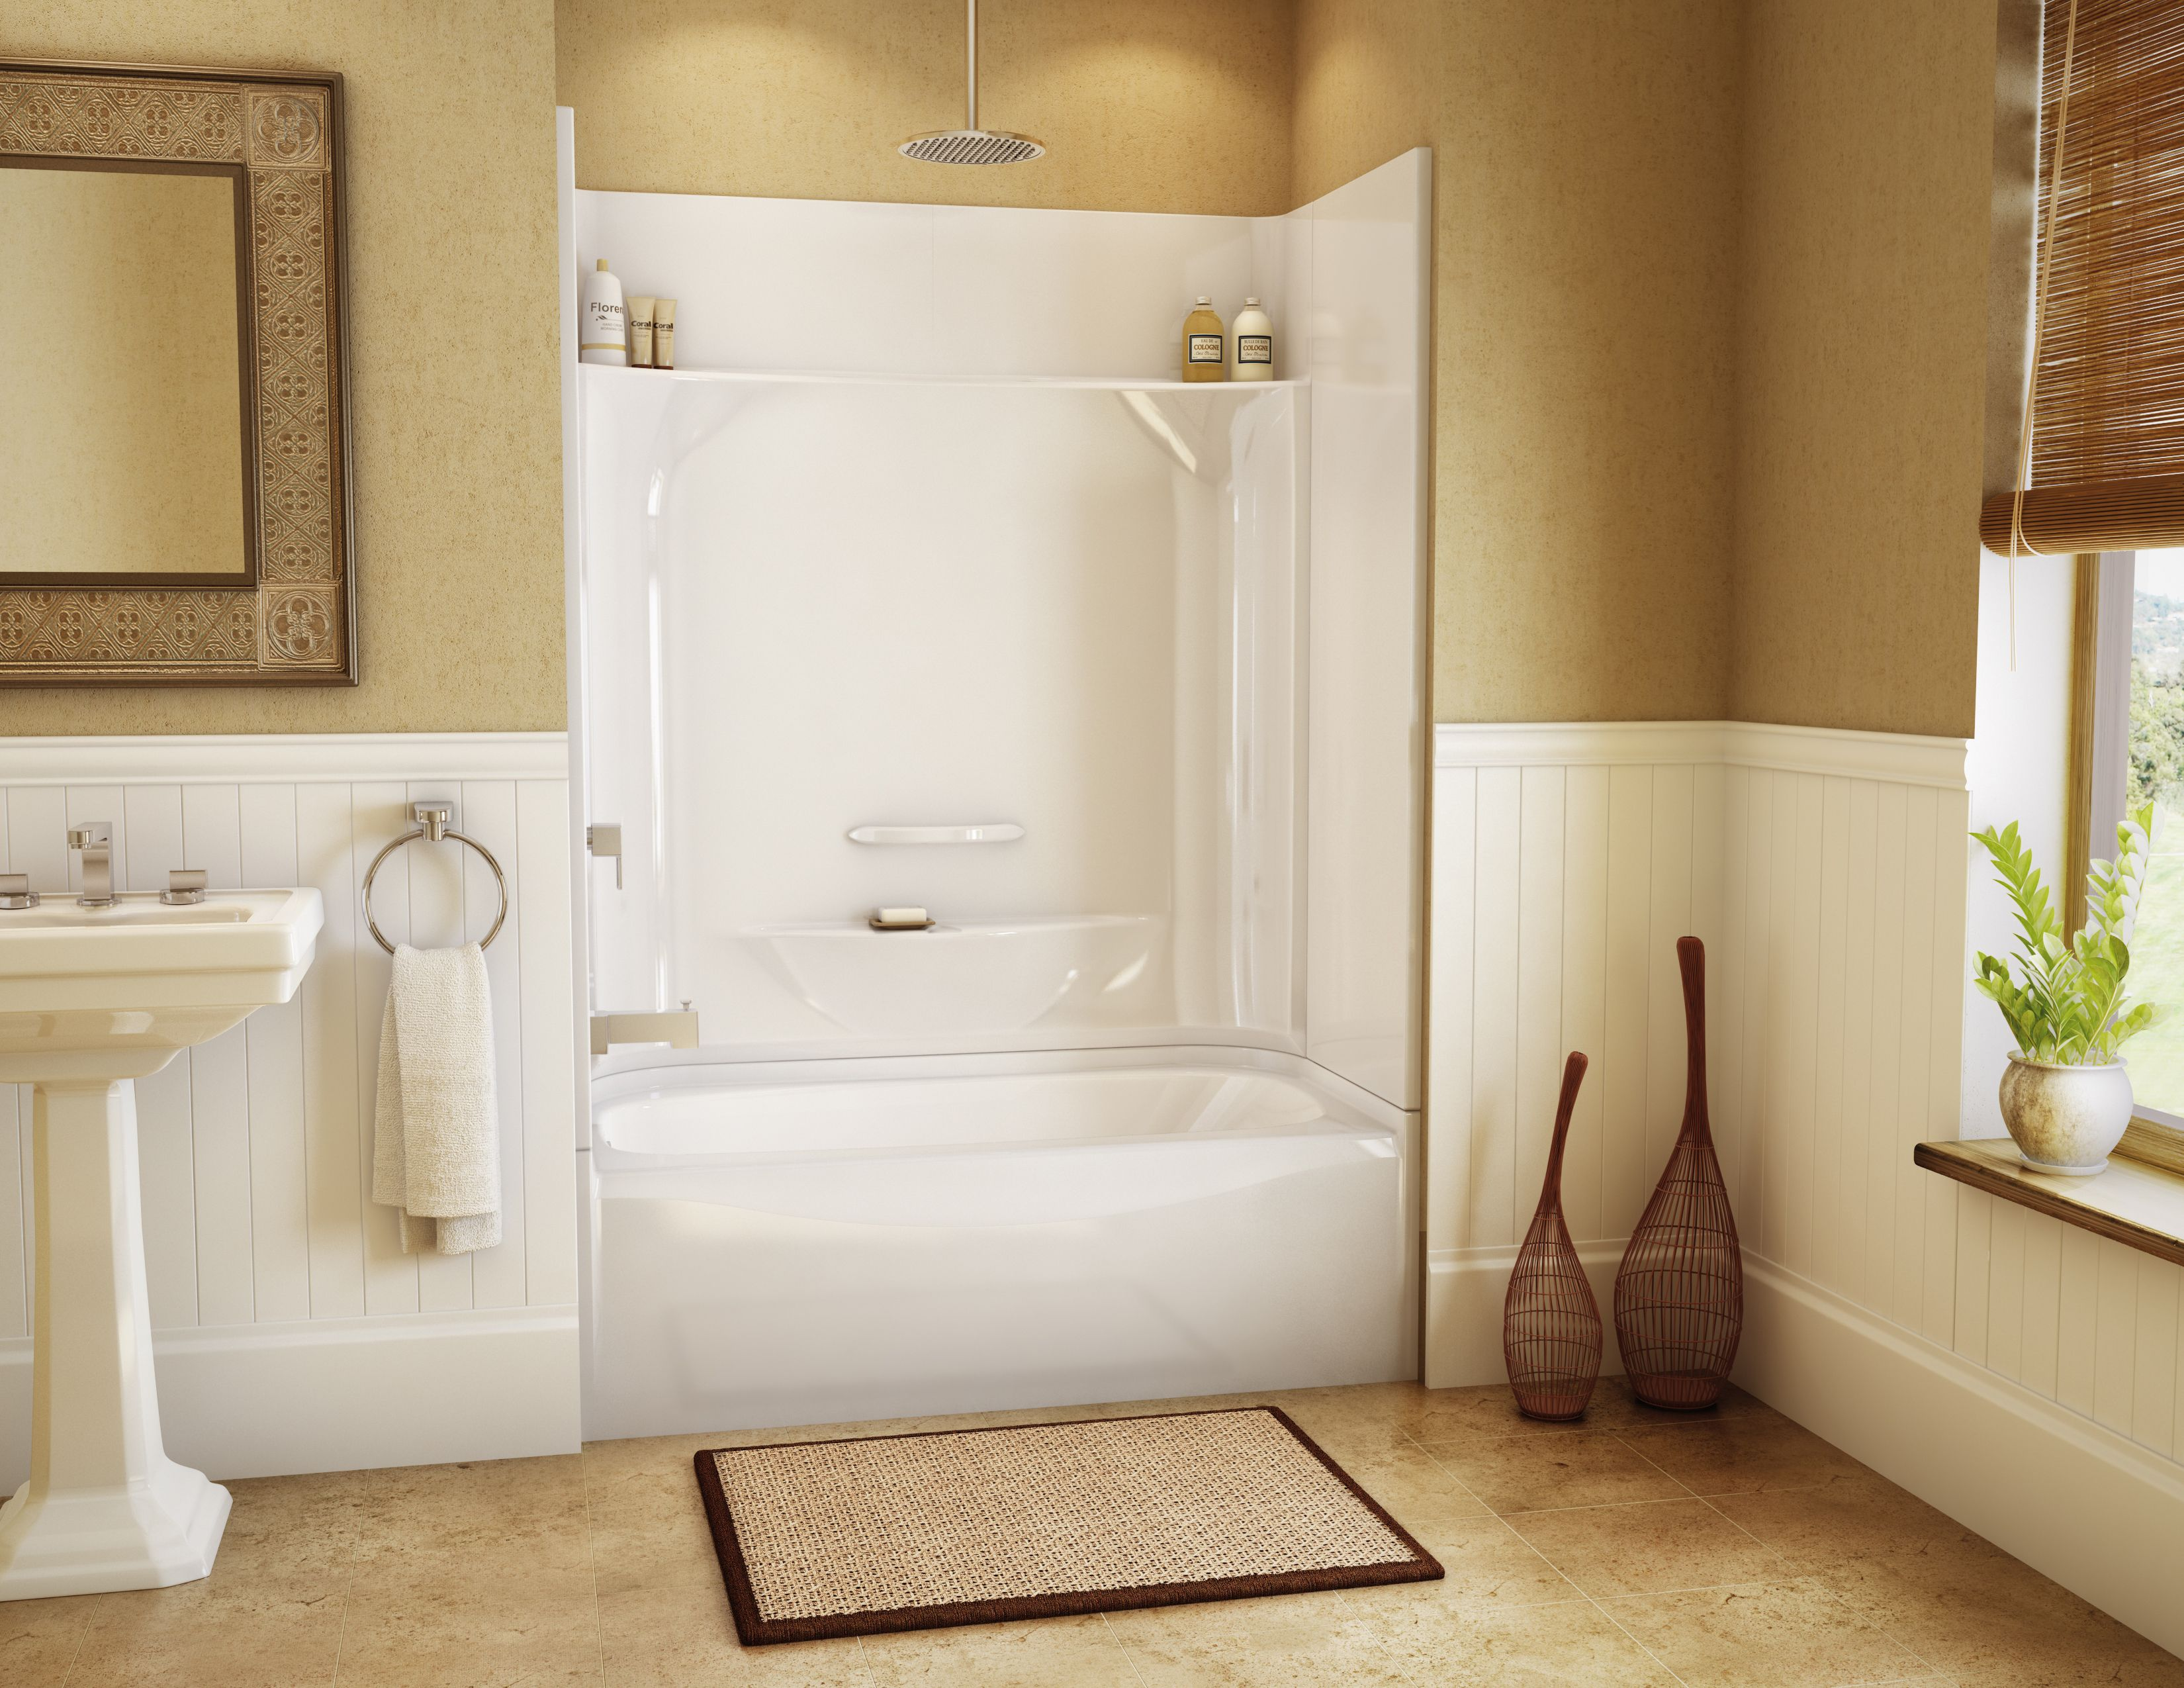 3 piece tub shower combo. Soaking Tub Shower Combination Ideas  With Clear Glass Cubicle And Combo All interests Pinterest shower